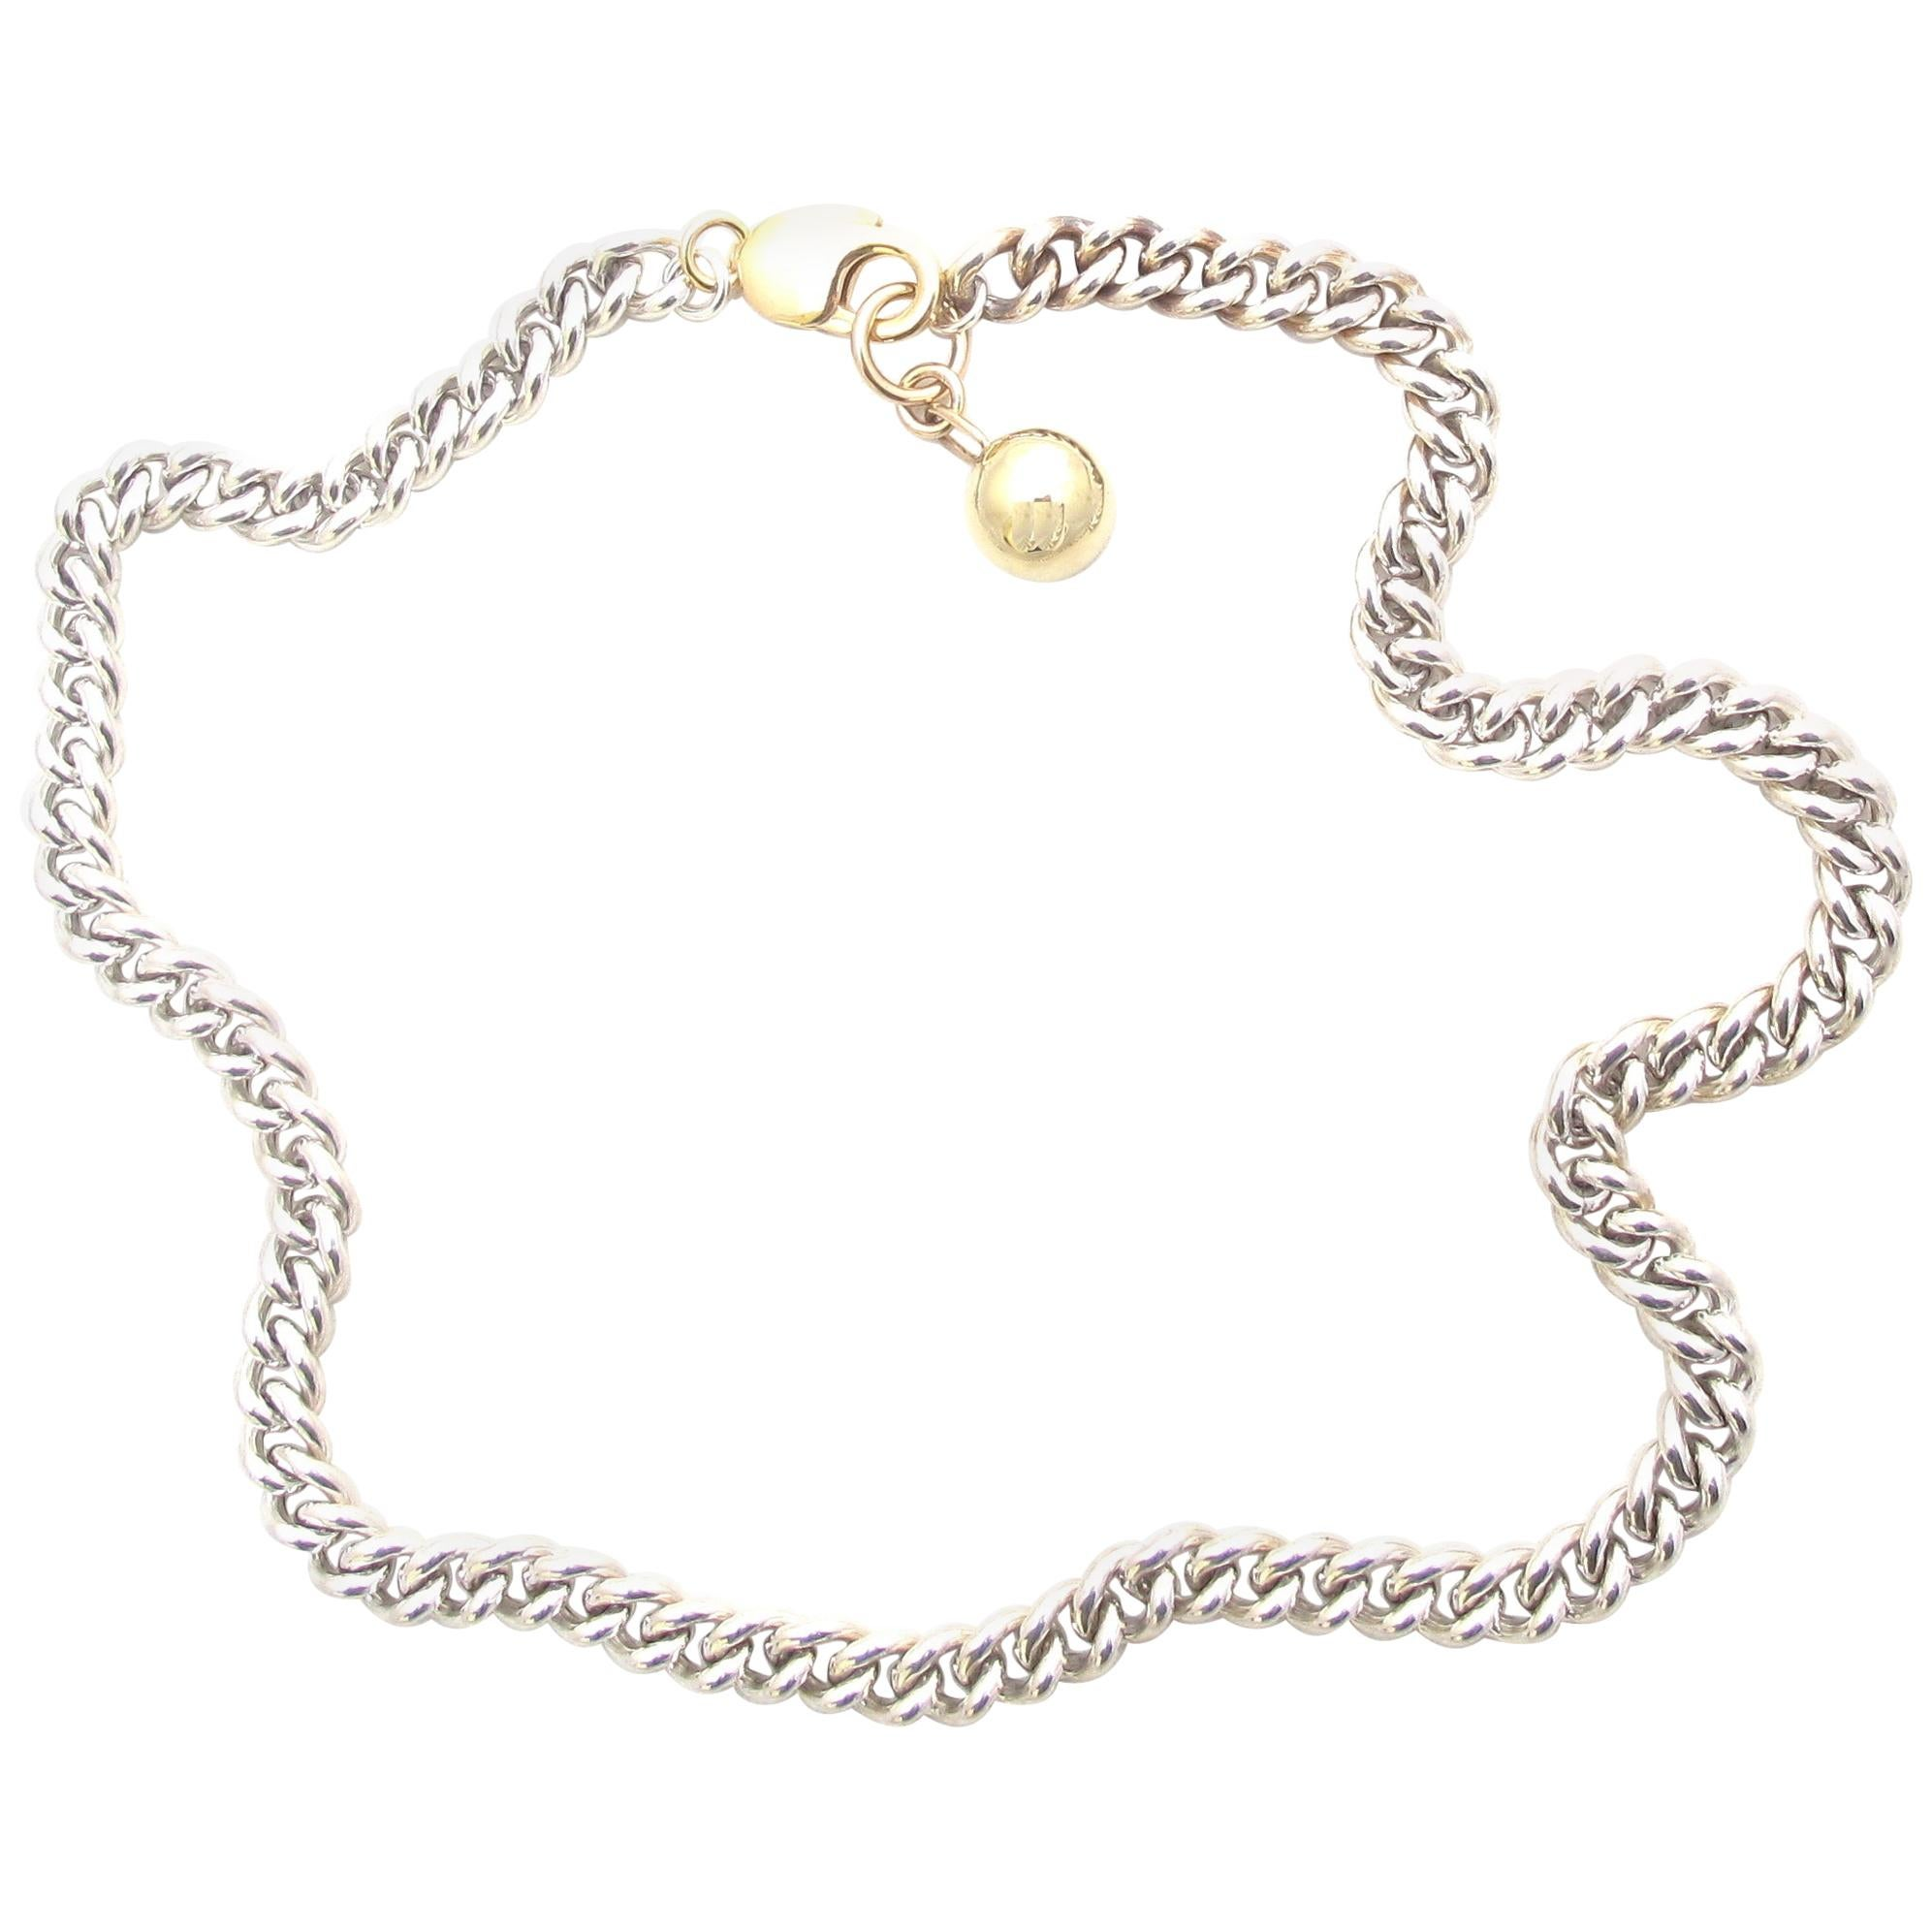 Jacqueline Rose Ball and Curb Chain Necklace